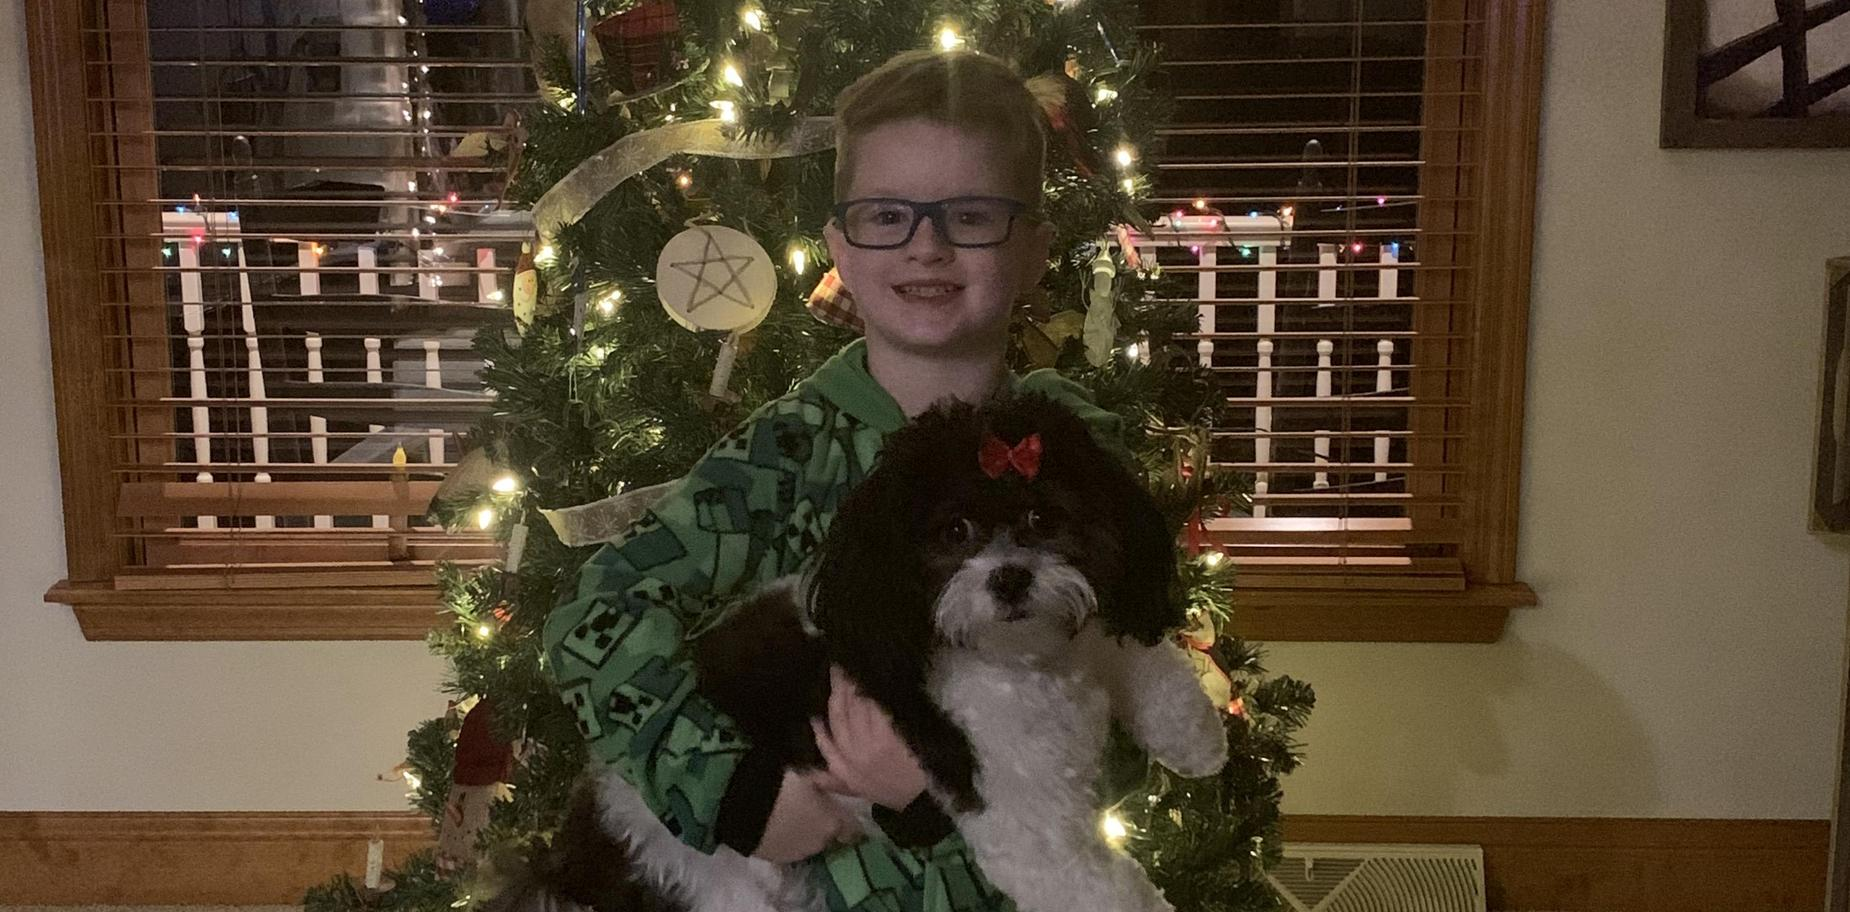 Child dressed in holiday attire holding a dog